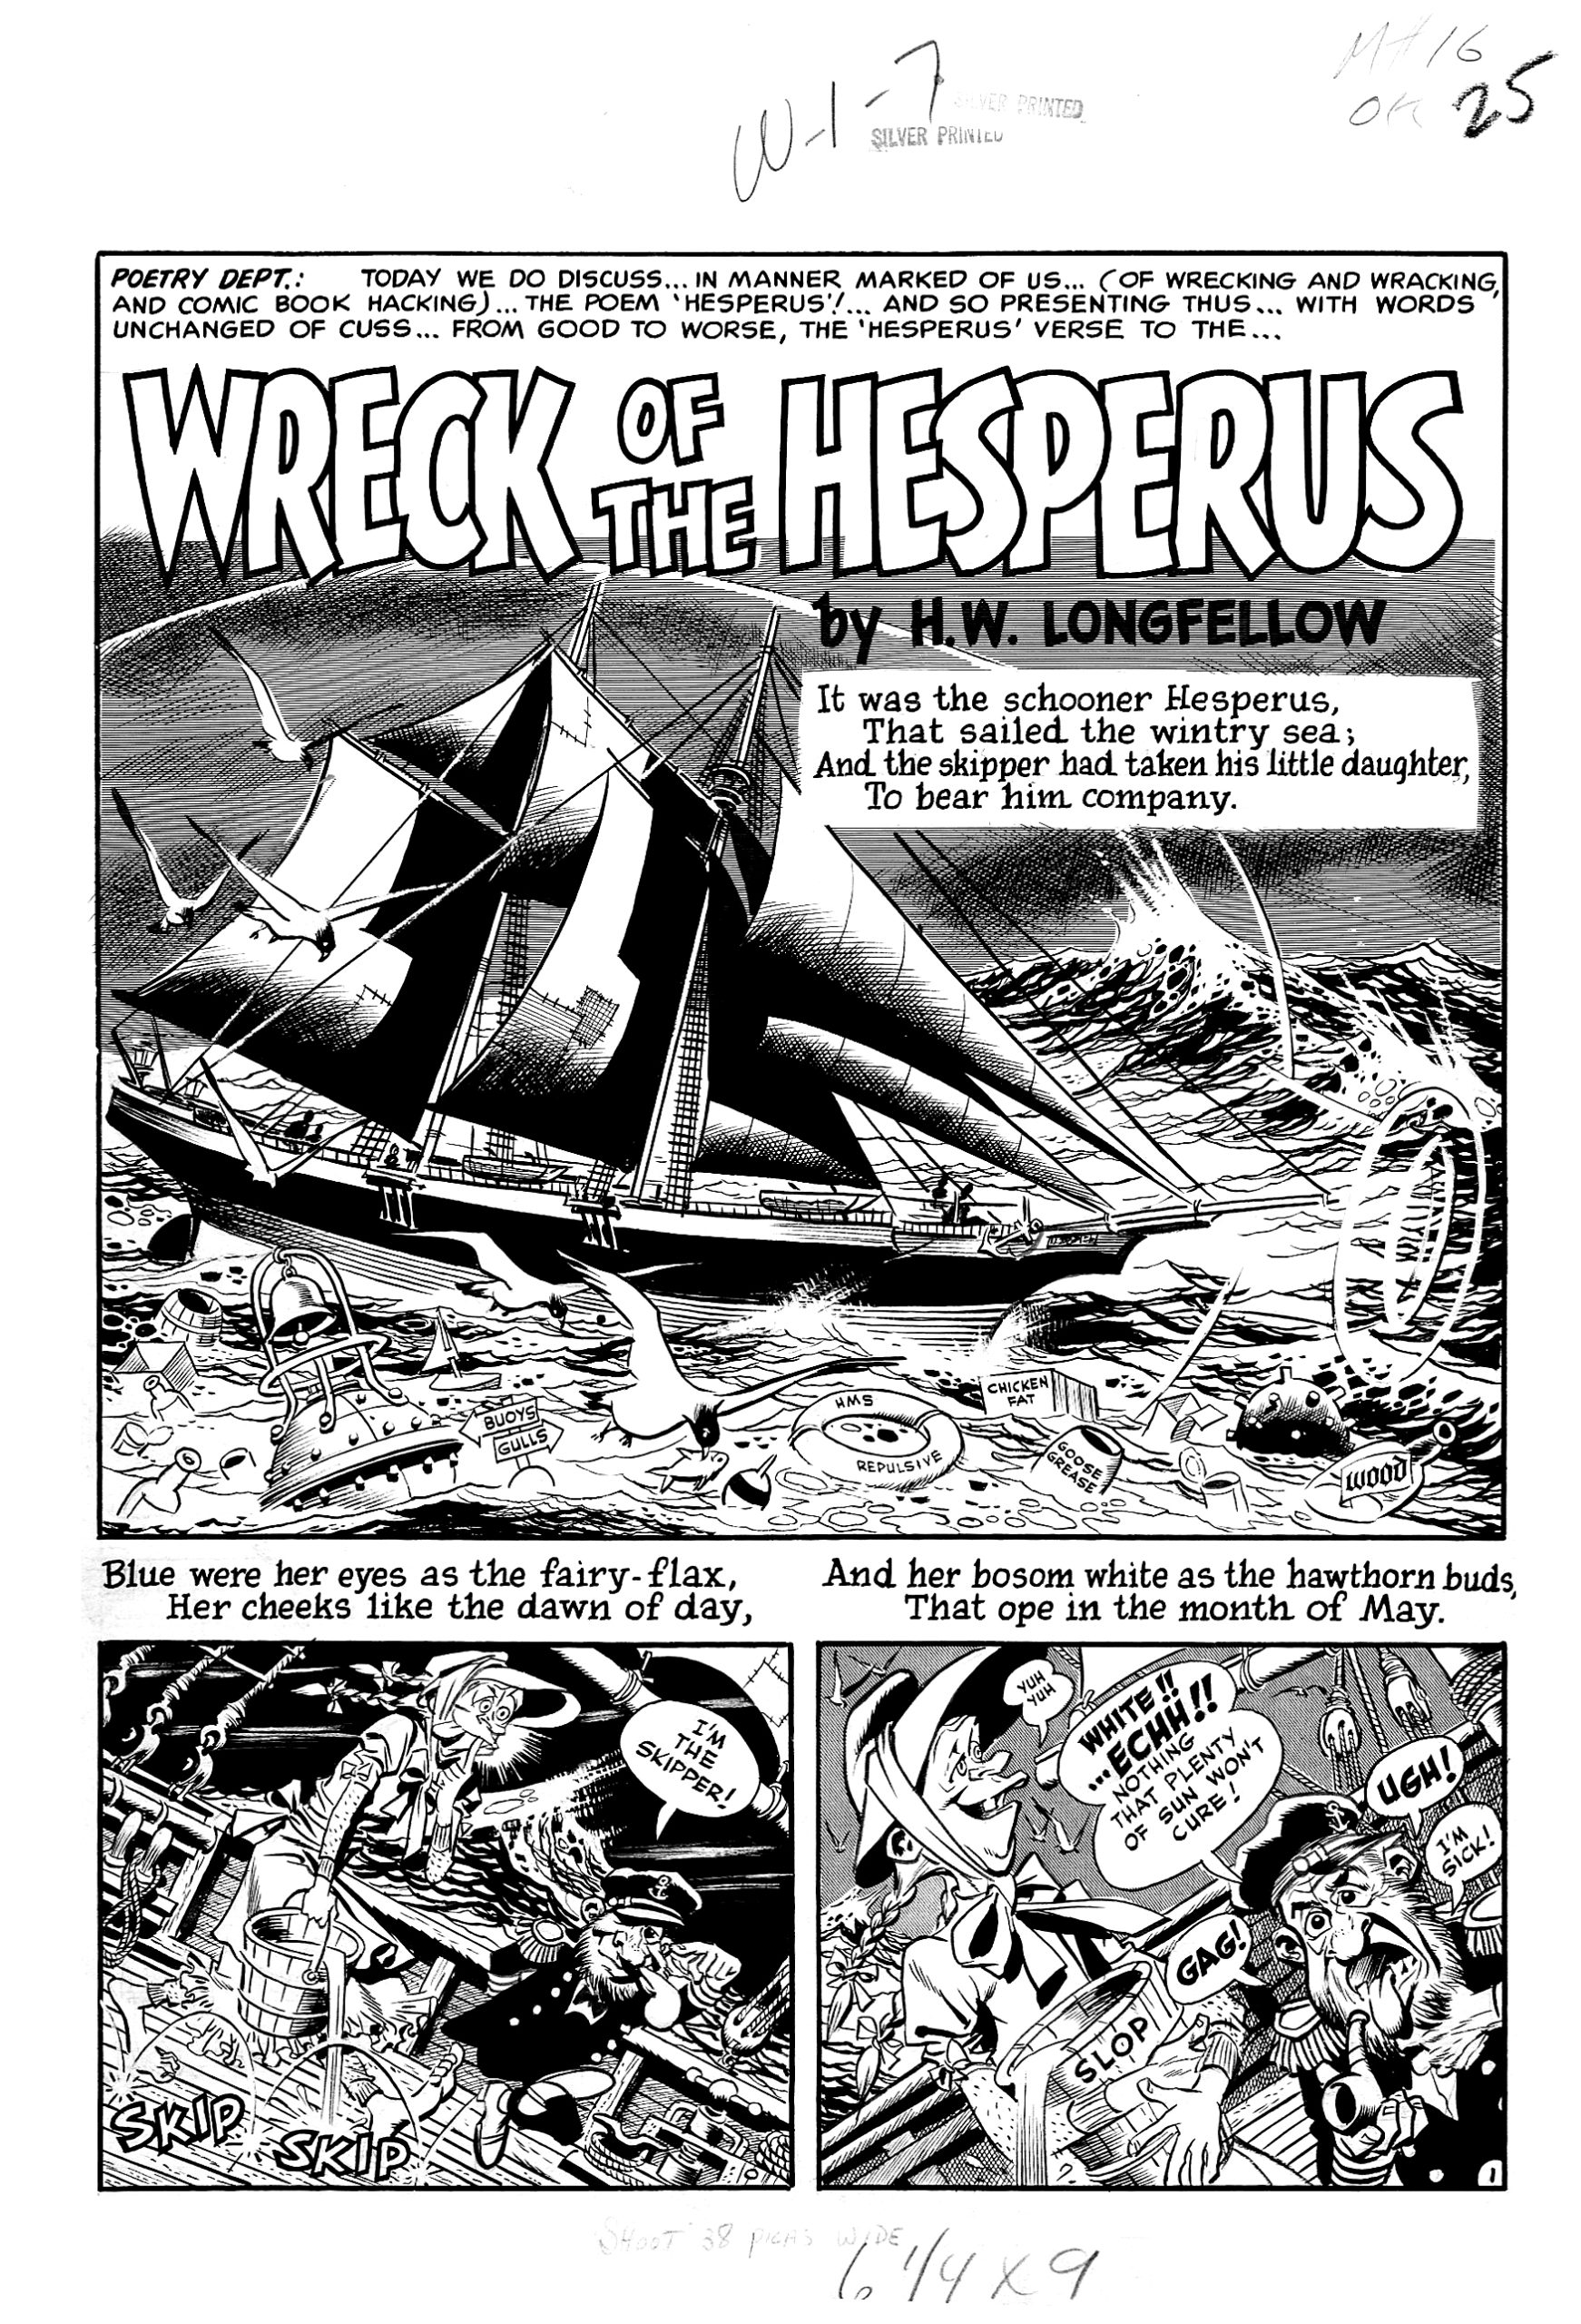 Wreck of The Hesperus – Mad #16 1954